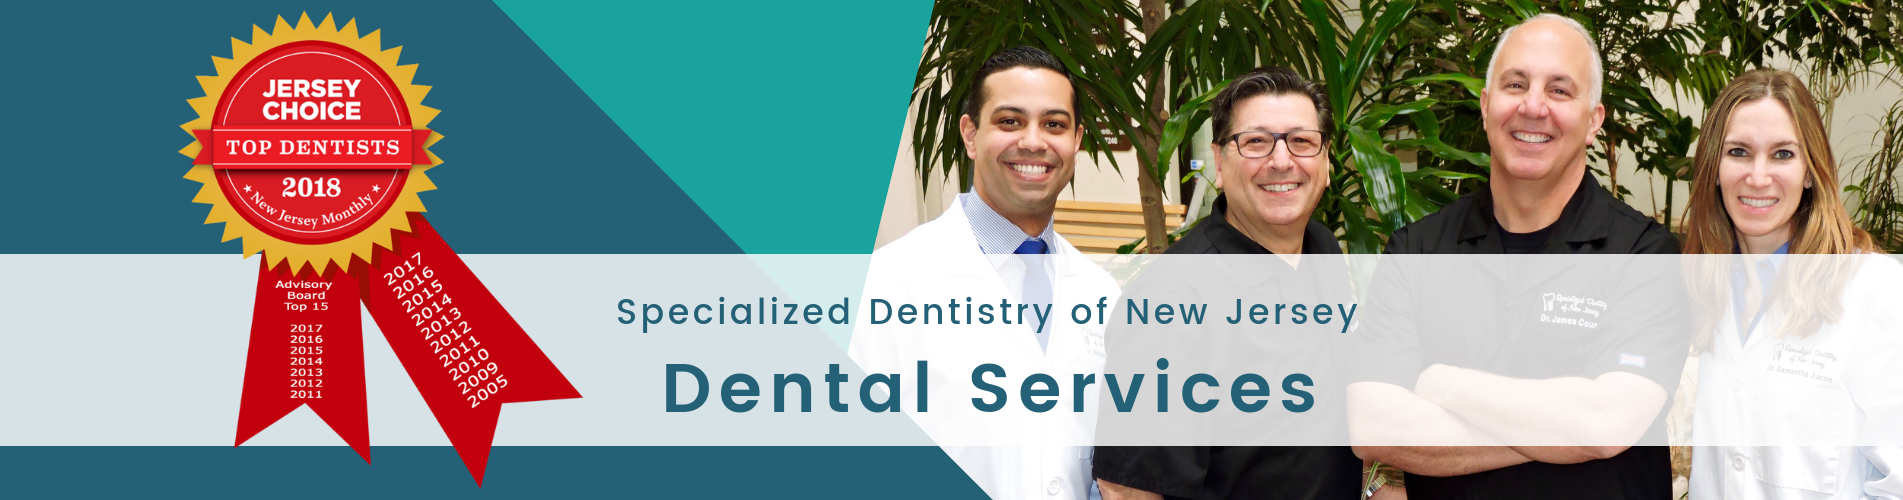 dental services from specialized dentistry of new jersey